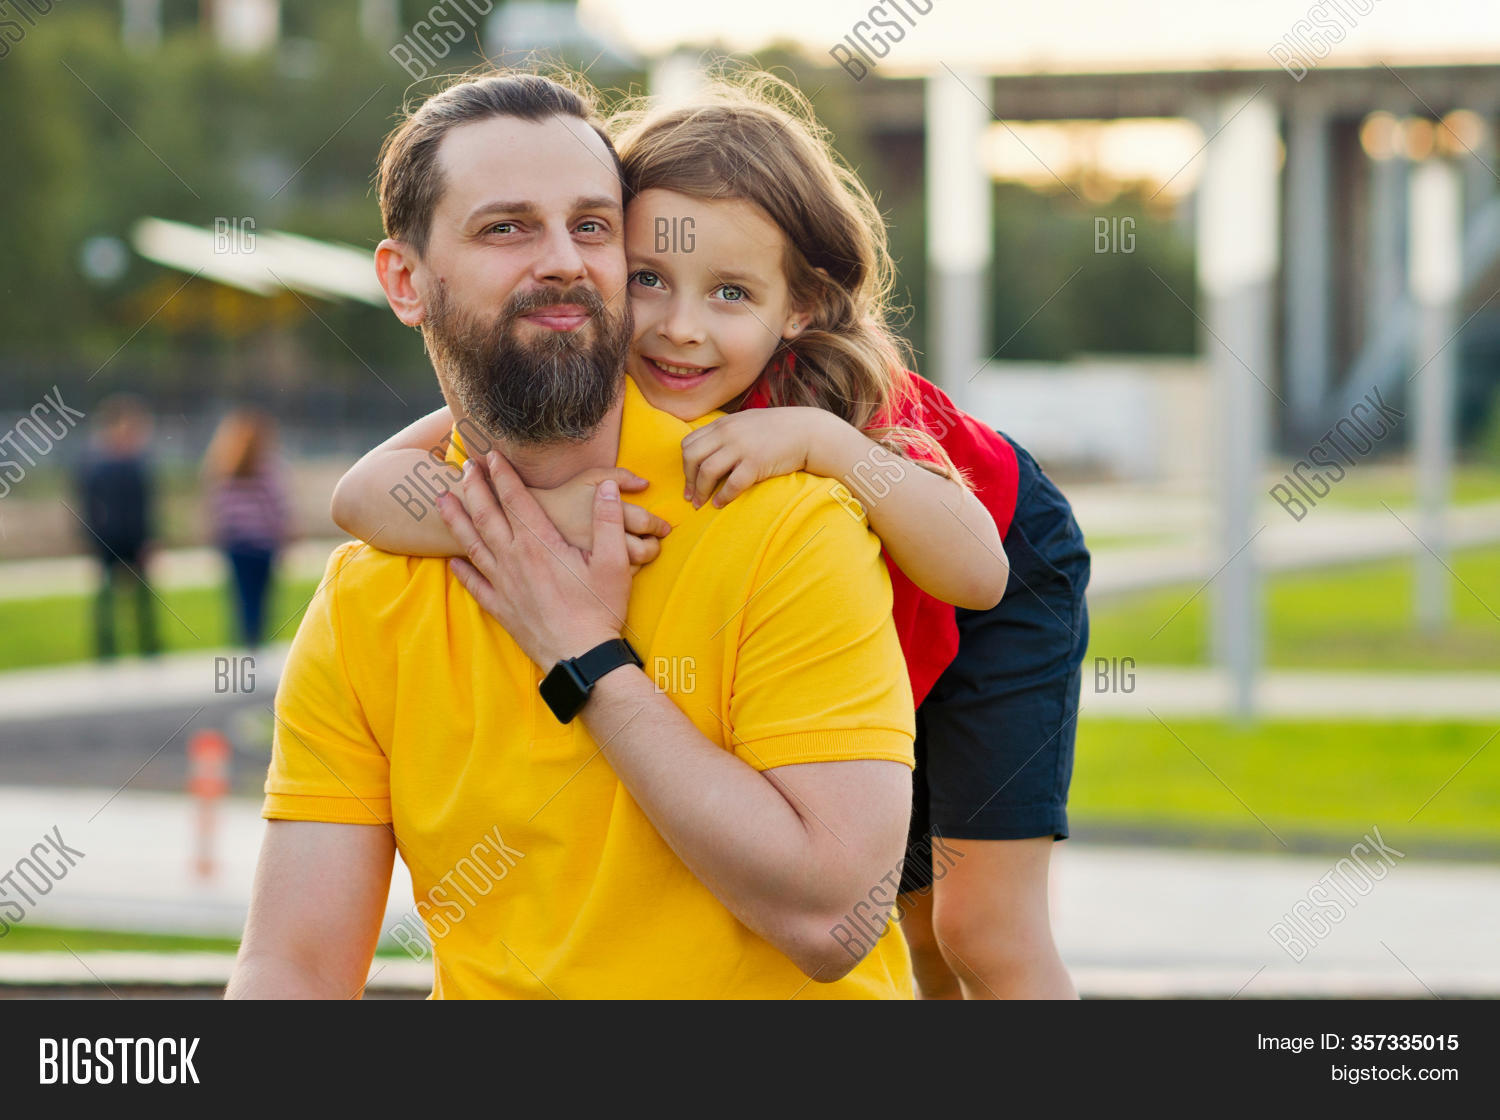 Family Portrait. Daughter Hugs Father. Family Fun. Beautiful Family Together. Leisure Together. Smil